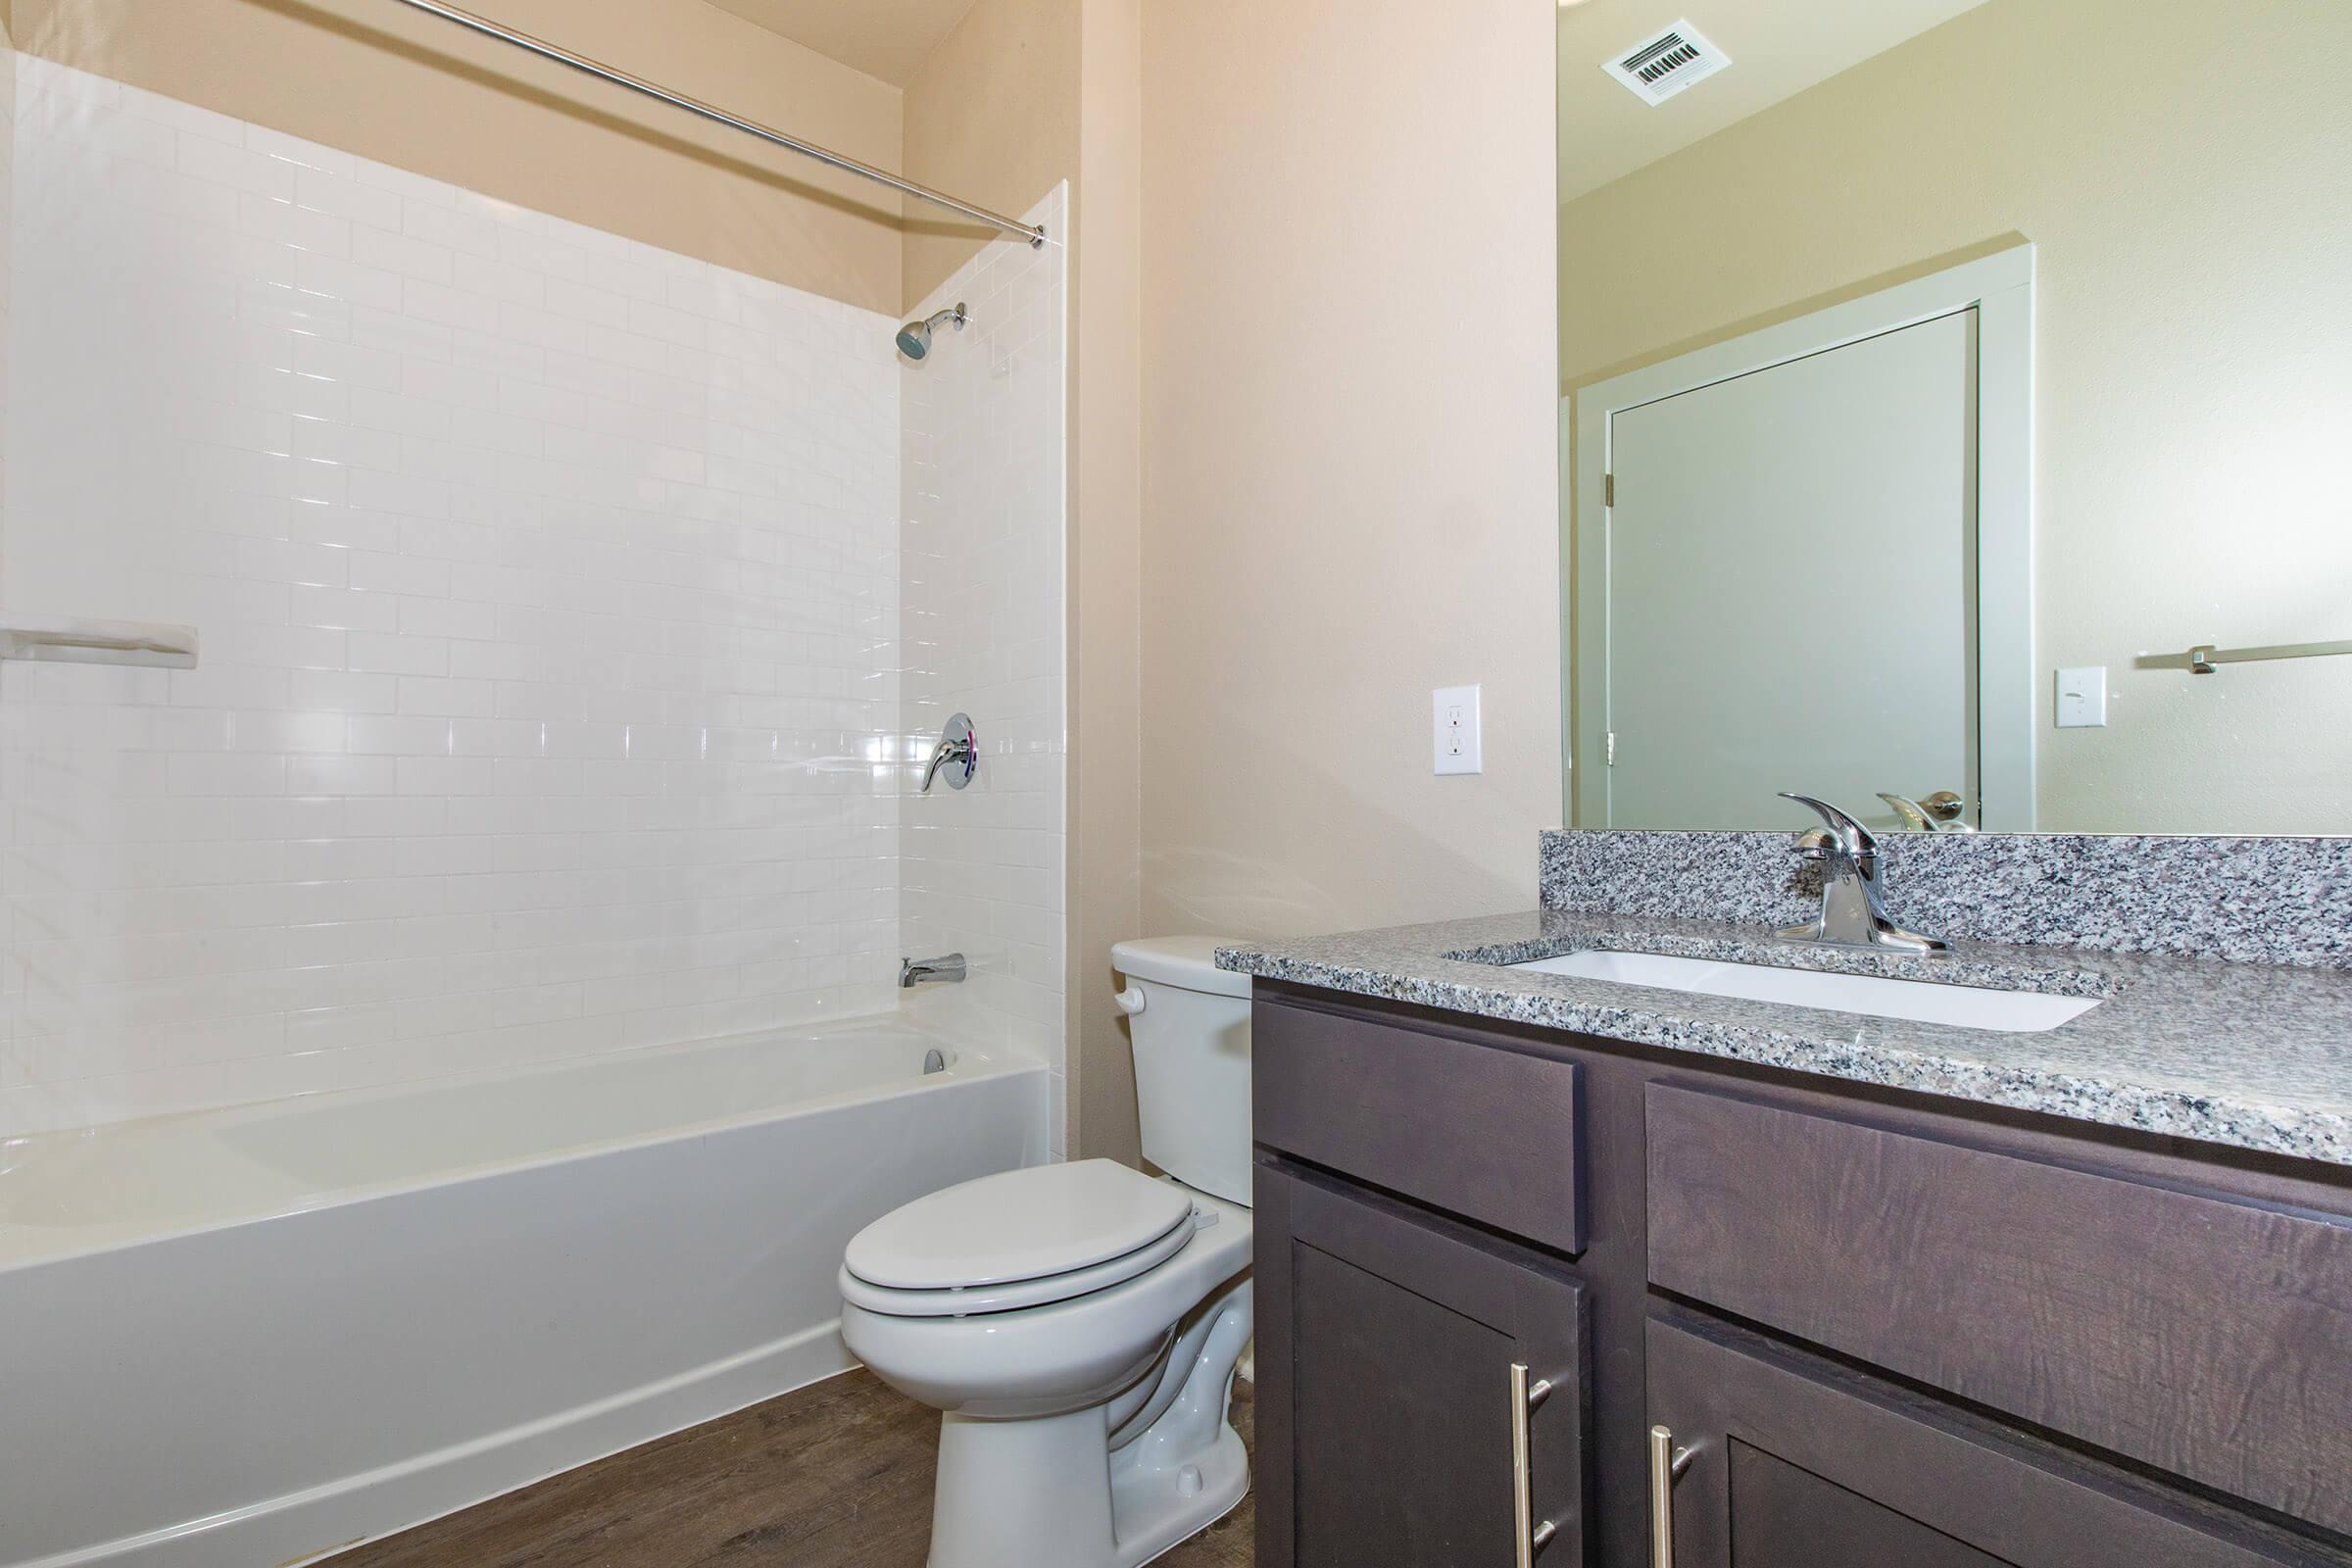 bathrooms  in our active adult living community